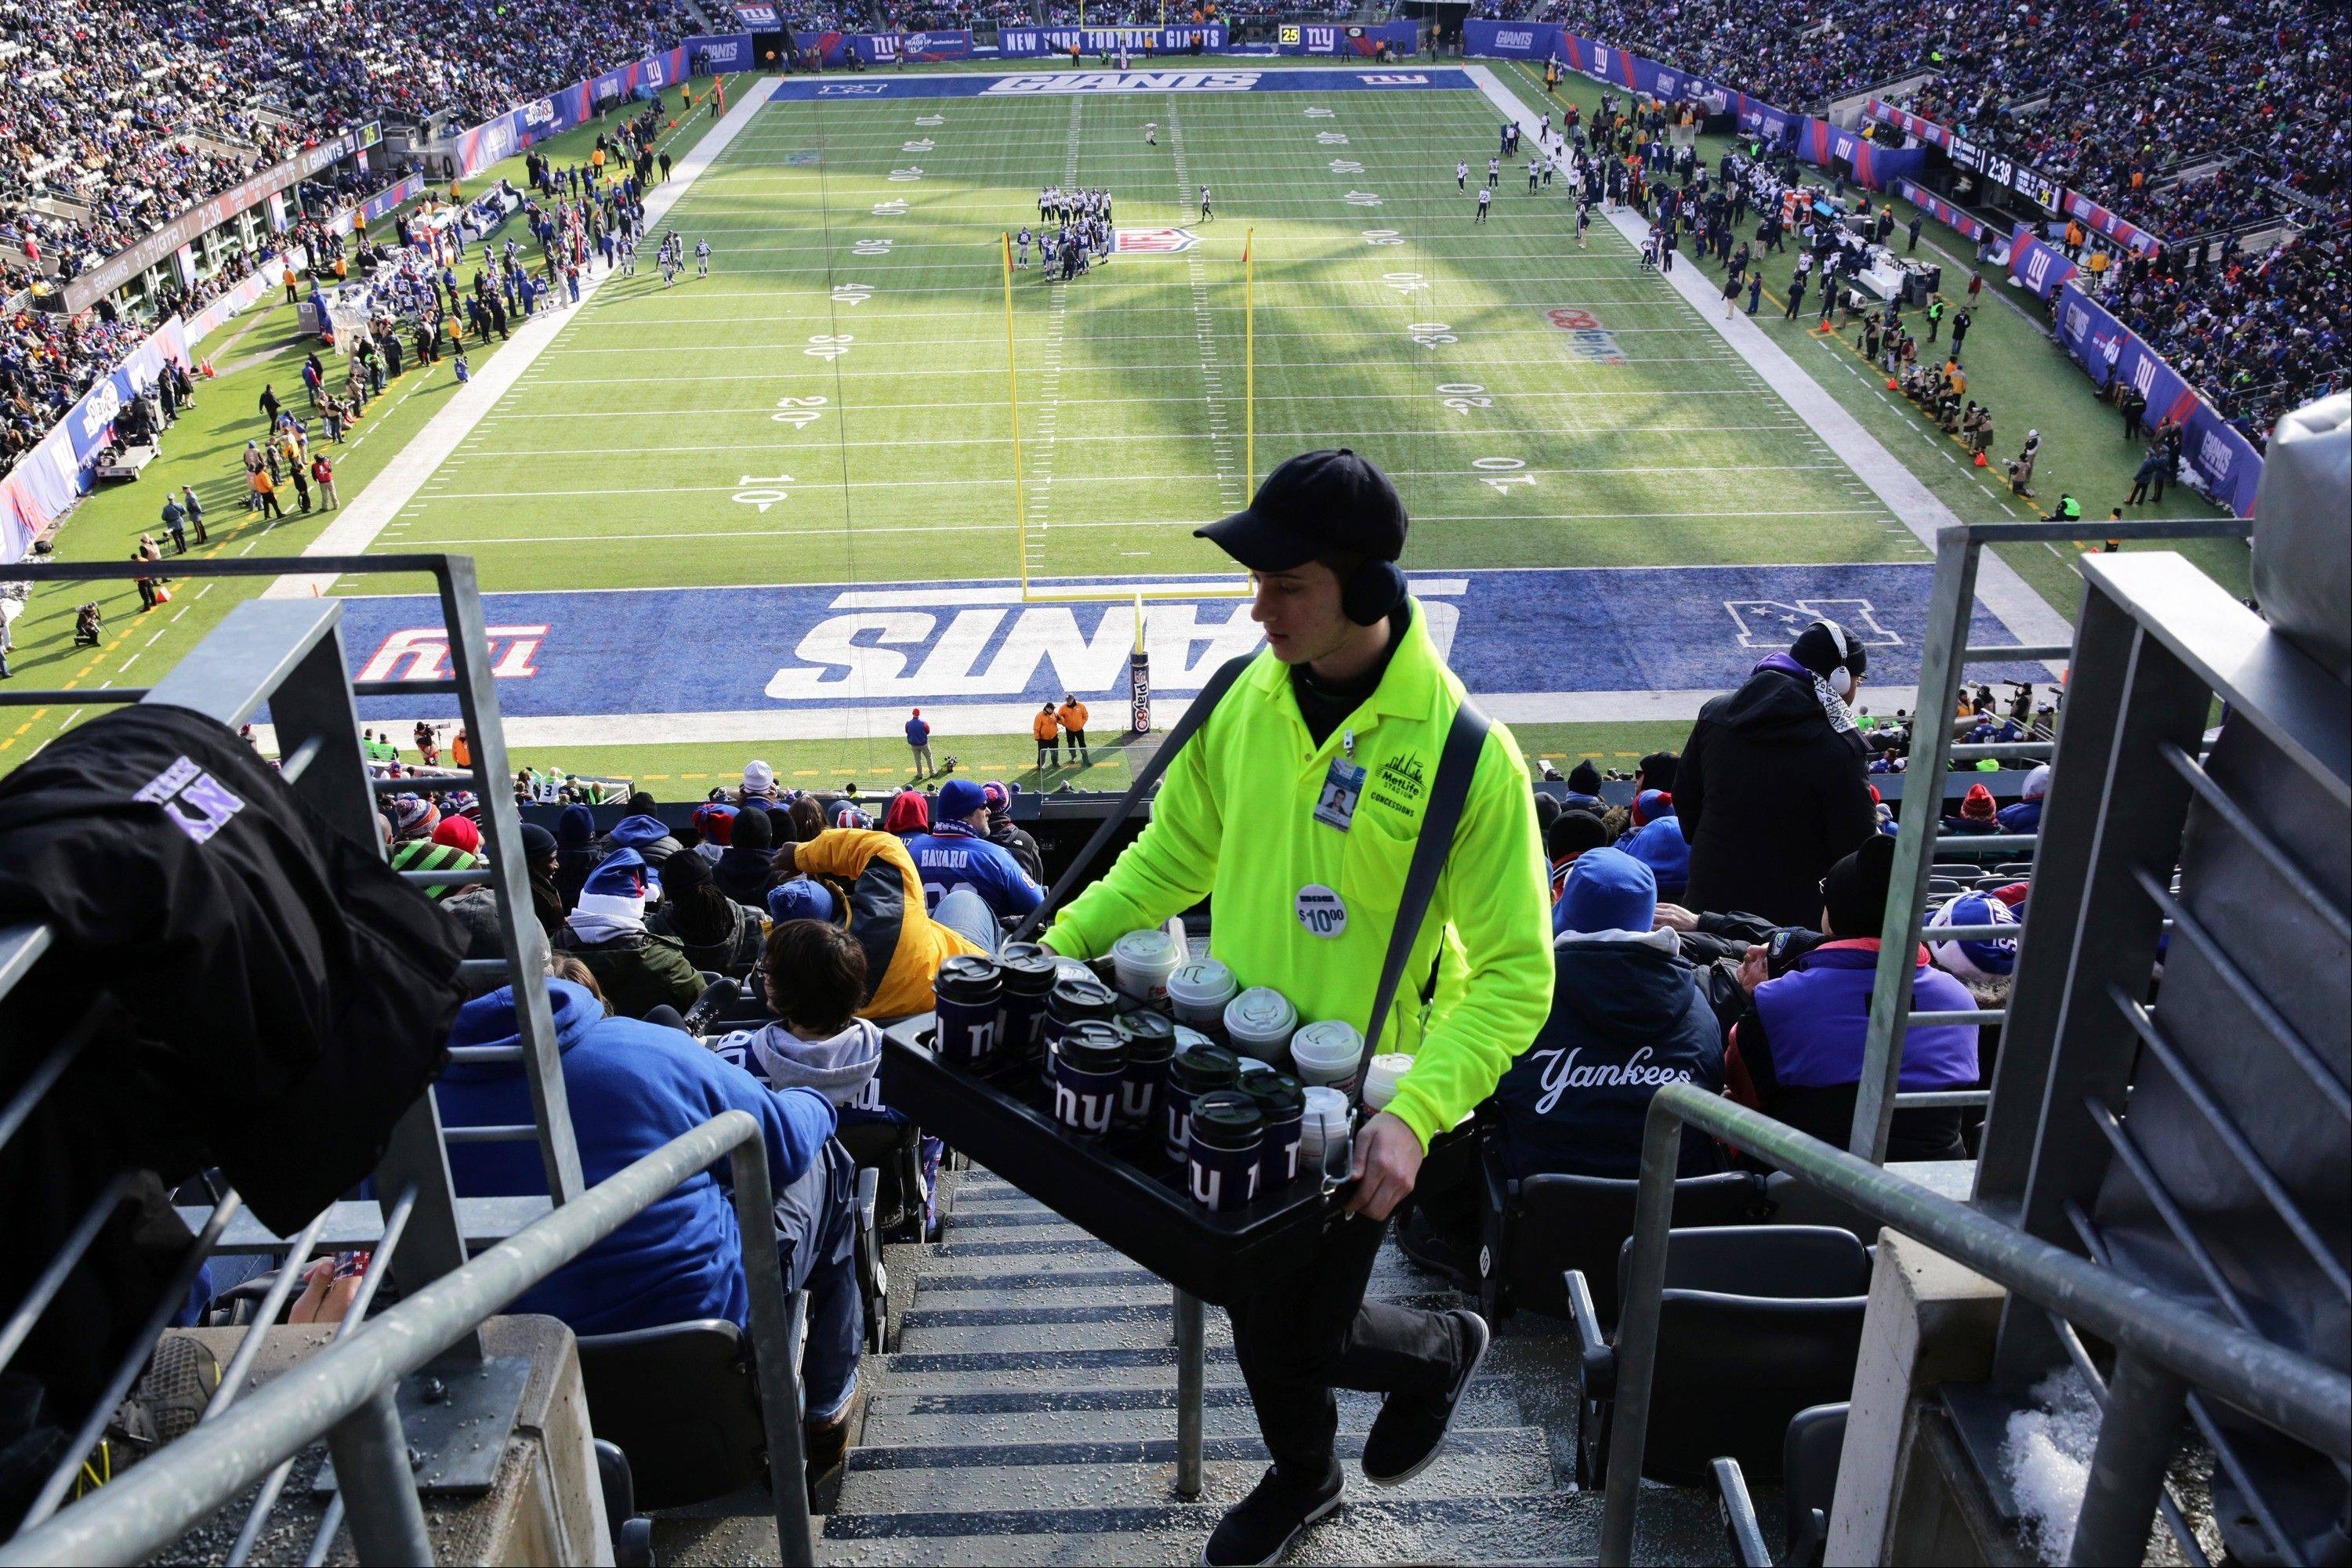 Despite all of the regional offerings at MetLife Stadium during the Super Bowl, vendors will still be roaming the stands selling hot dogs, beer and more.